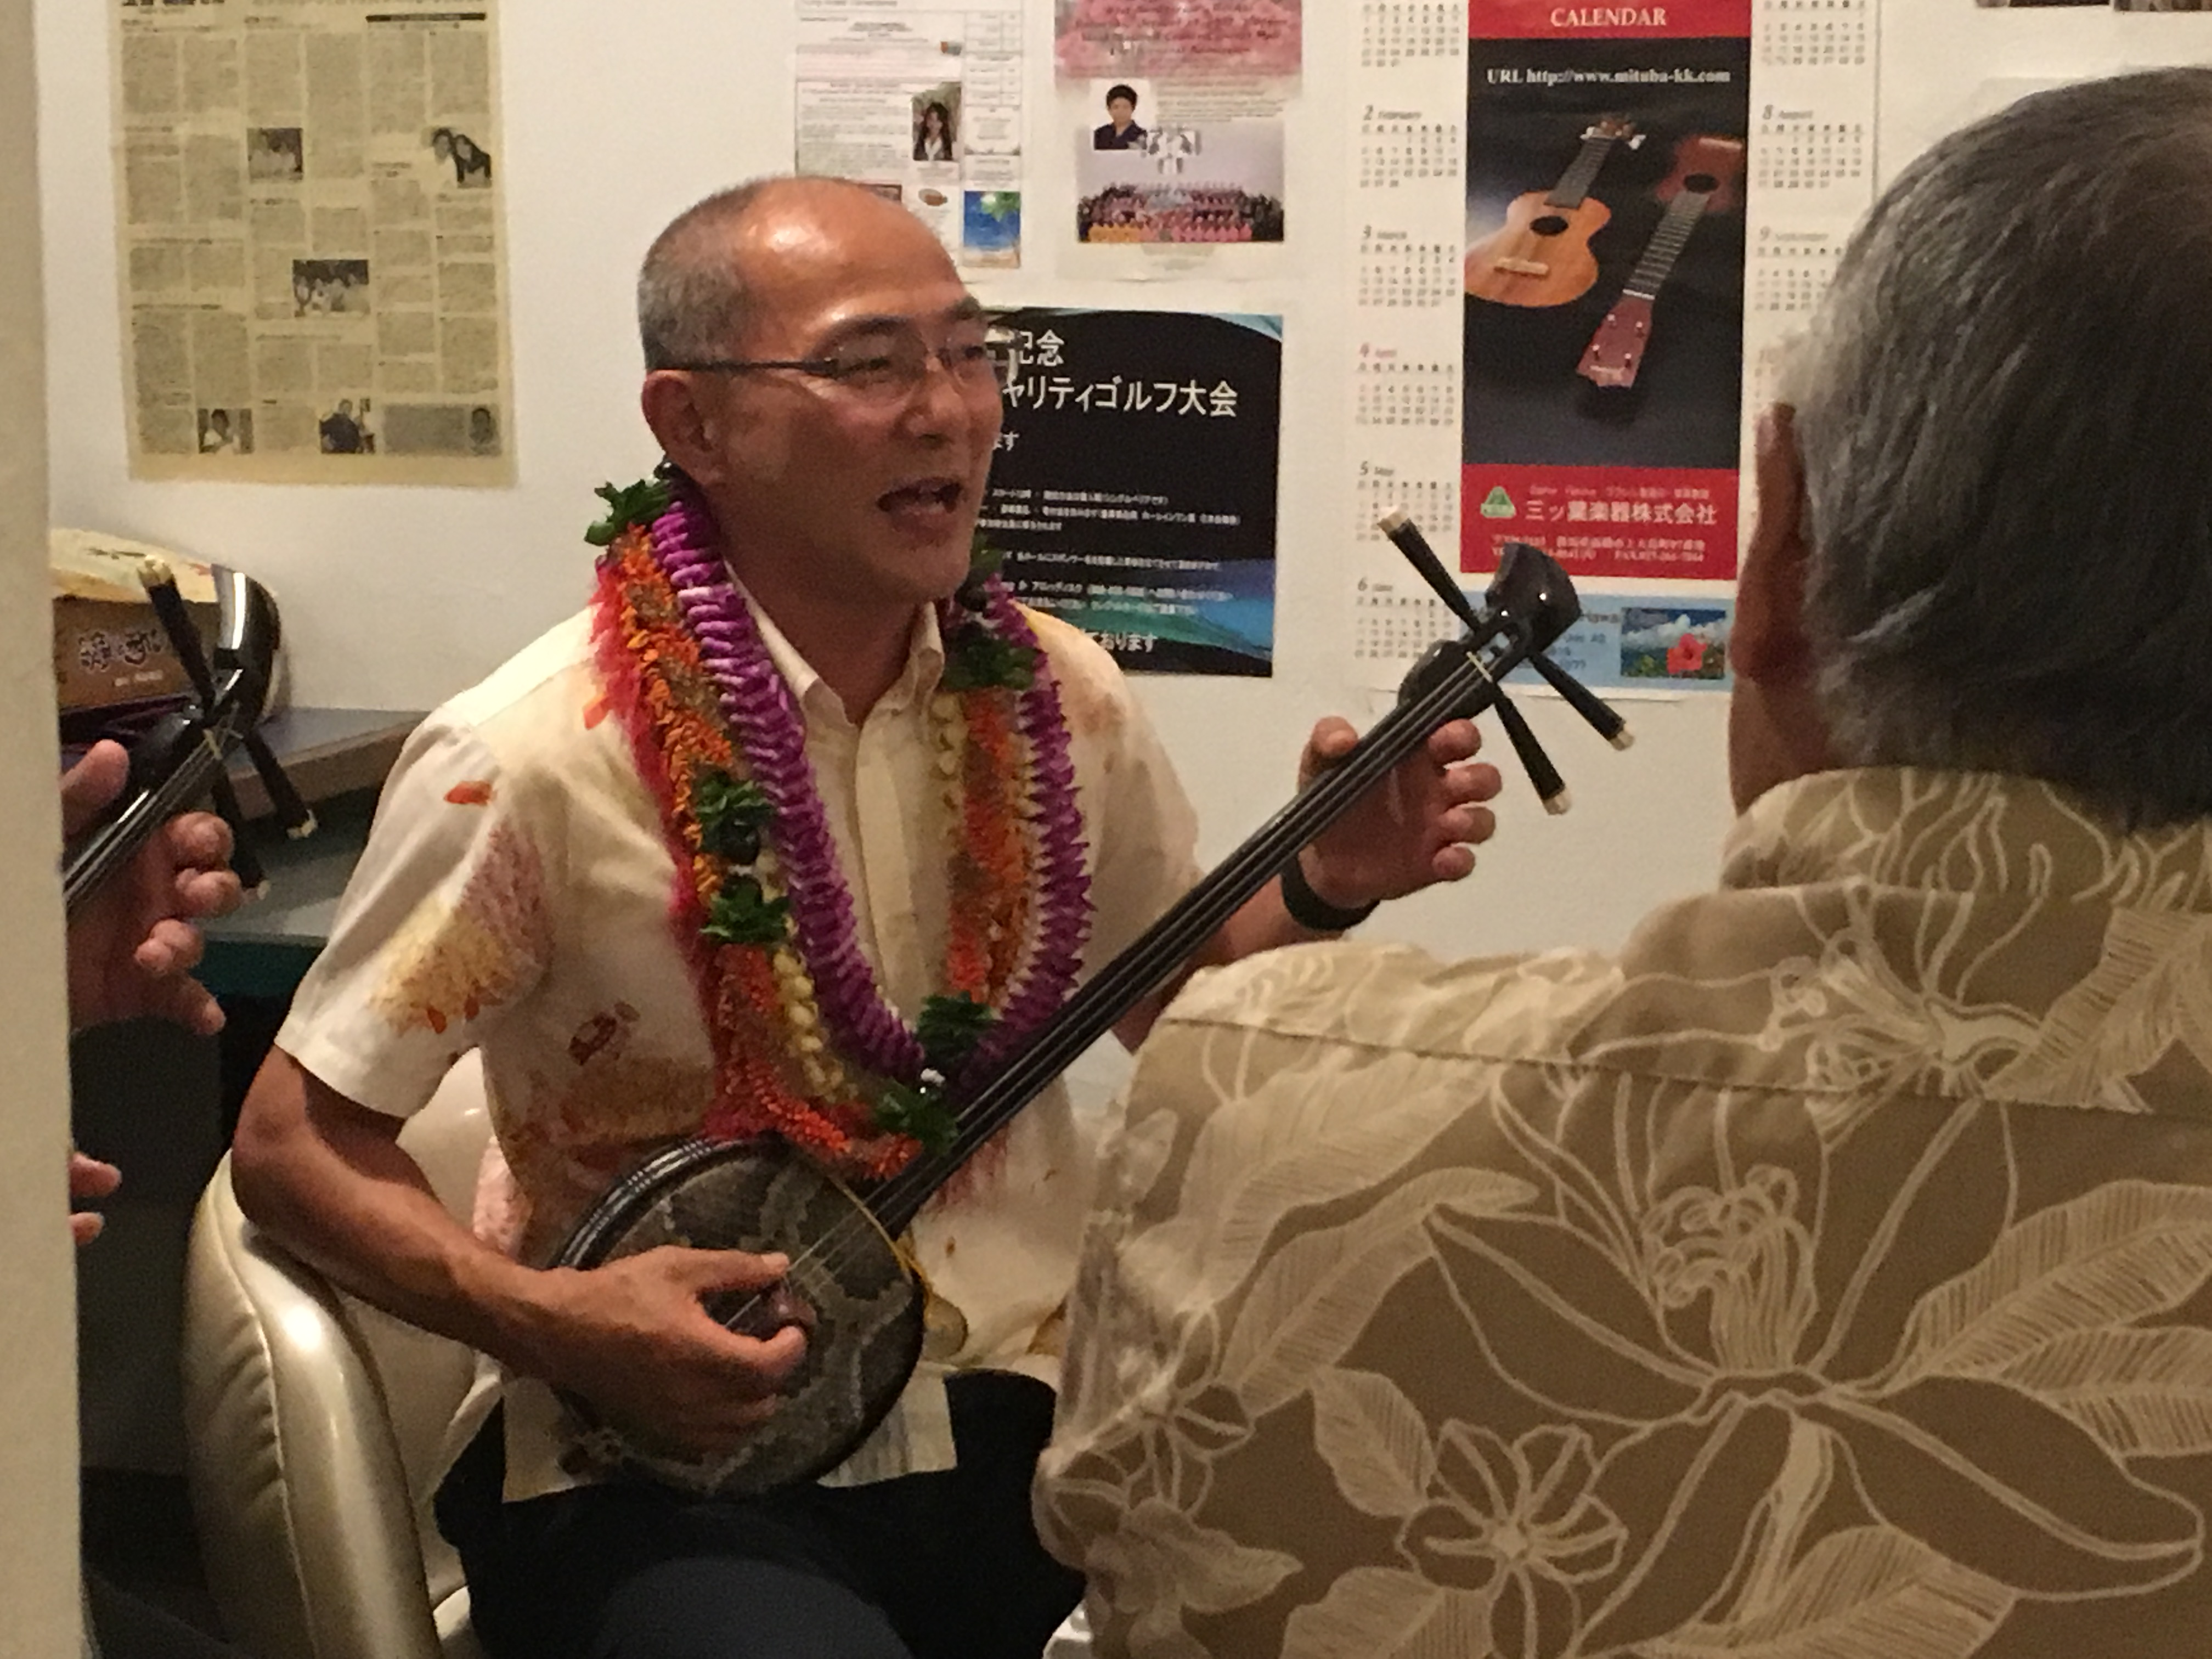 Consul General Misawa embraced his time in Hawai'i by learning about the history of the Japanese in Hawai'i, and taking sanshin and 'ukulele lessons.